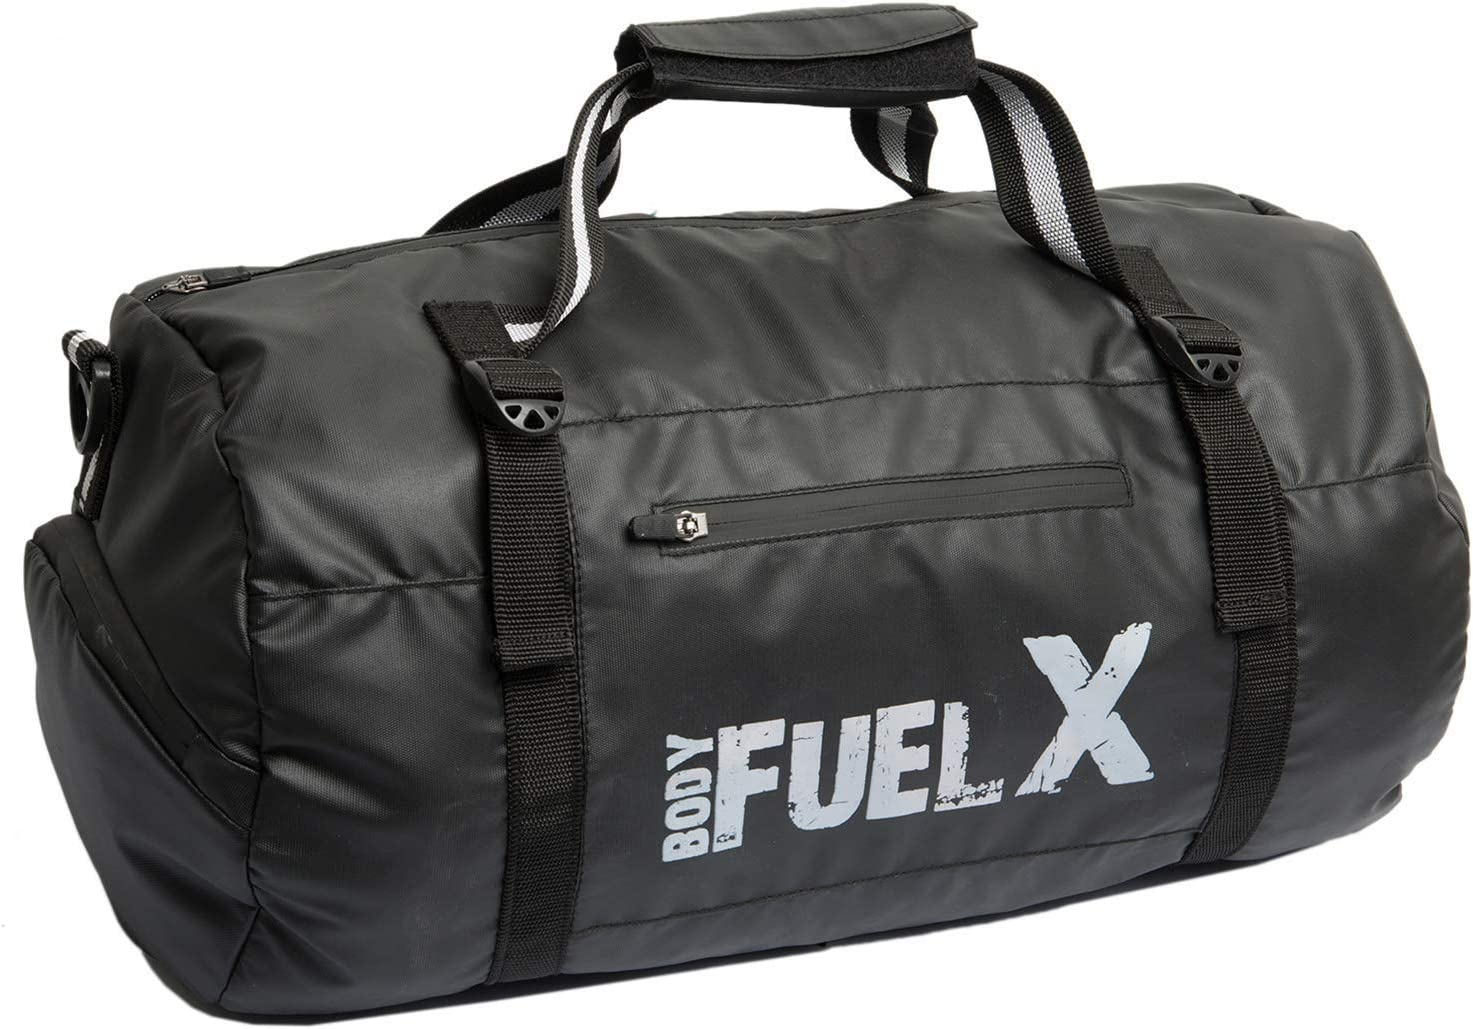 Waterproof Outlet SALE Black -Gym Limited price Traveller Duffel for Me Outdoor Bag Sports